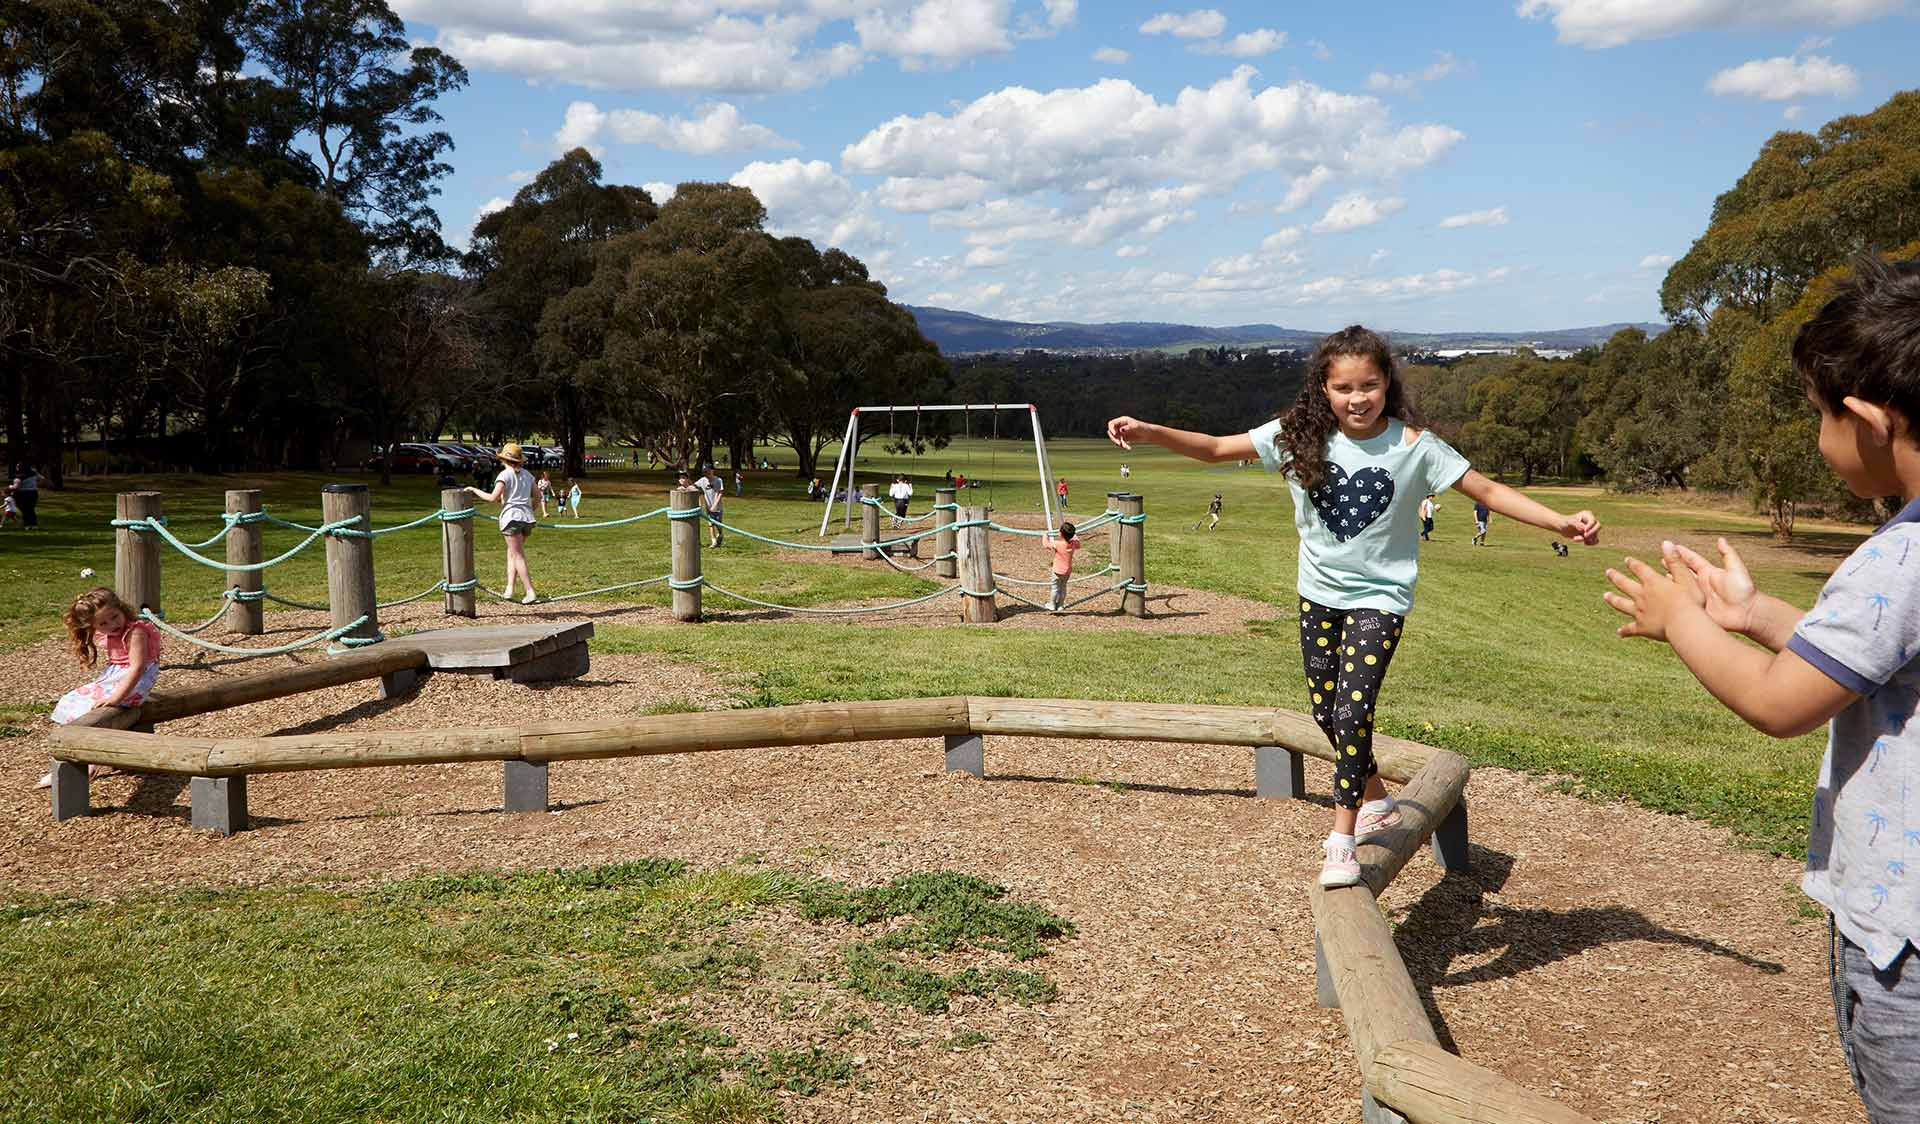 A young girl walking on a winding balance beam with children and families playing in the background at Yabby Hill Playscape